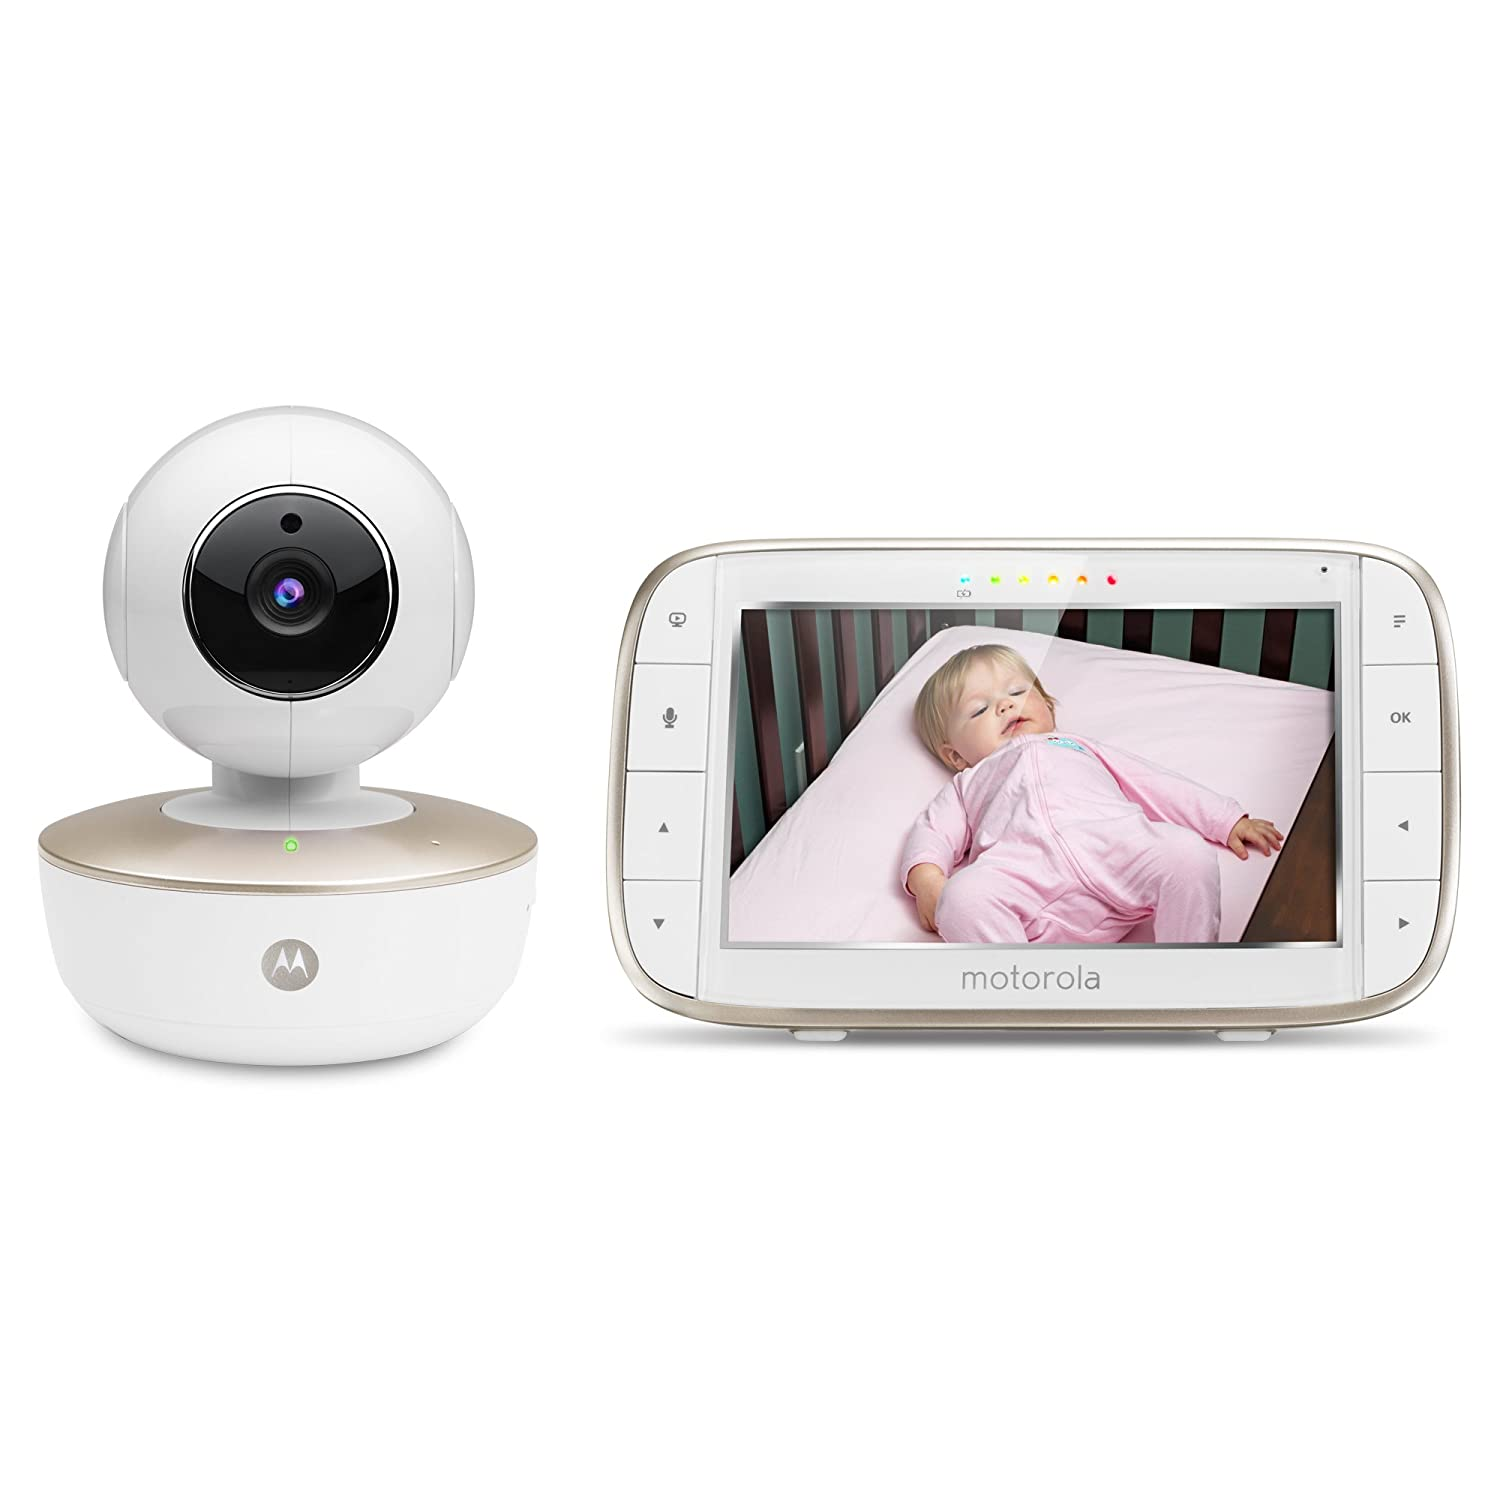 Motorola MBP855CONNECT Portable 5 Inch Screen Video Baby Monitor with Wi Fi and Free Star Grip Support Amazon Bebé